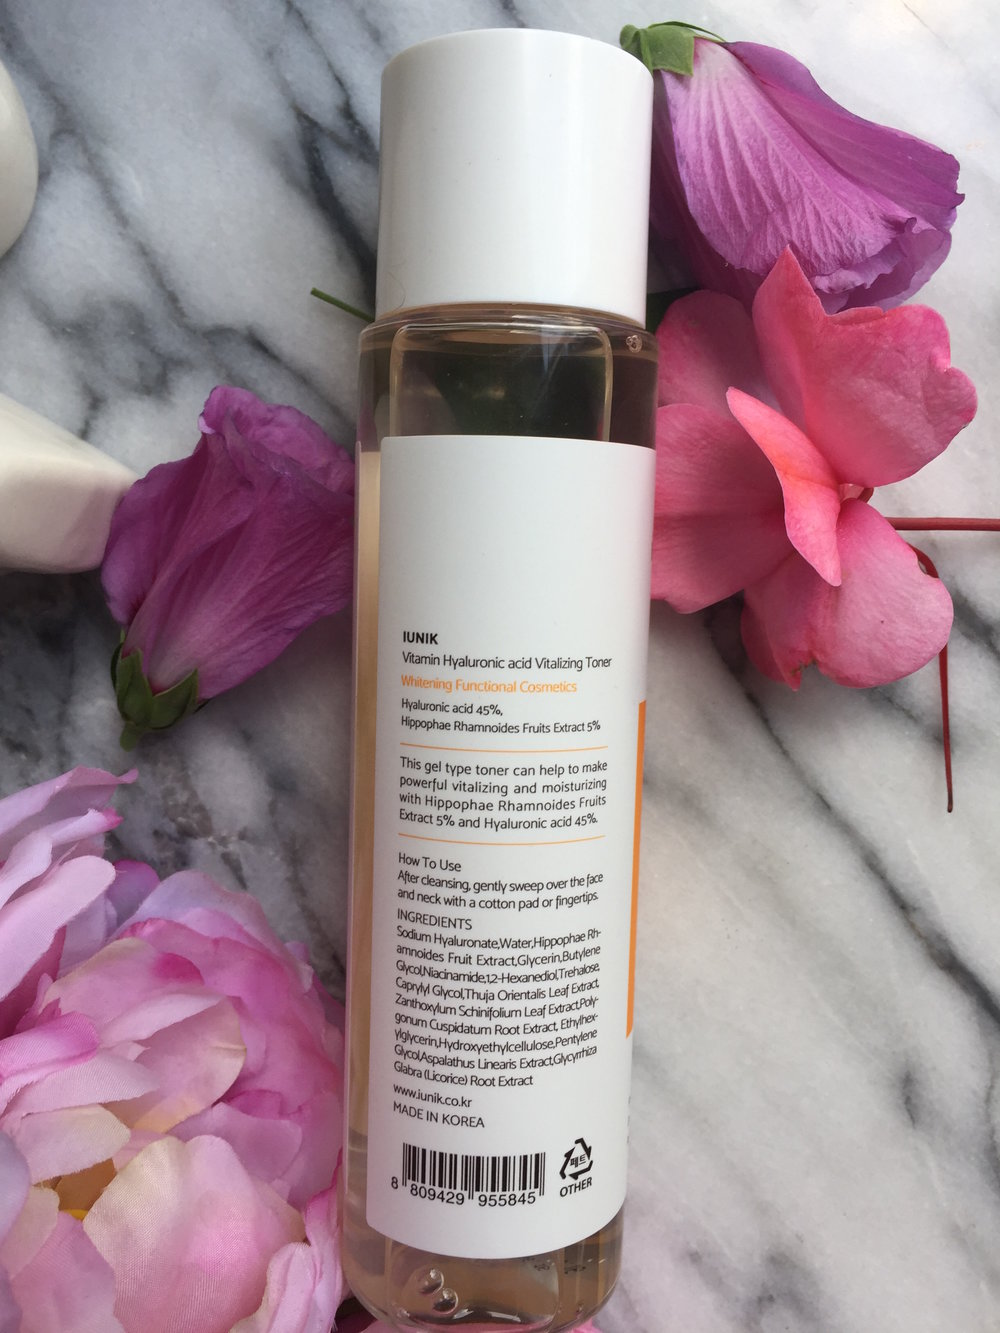 iUnik Vitamin Hyaluronic Acid Vitalizing Toner - Back